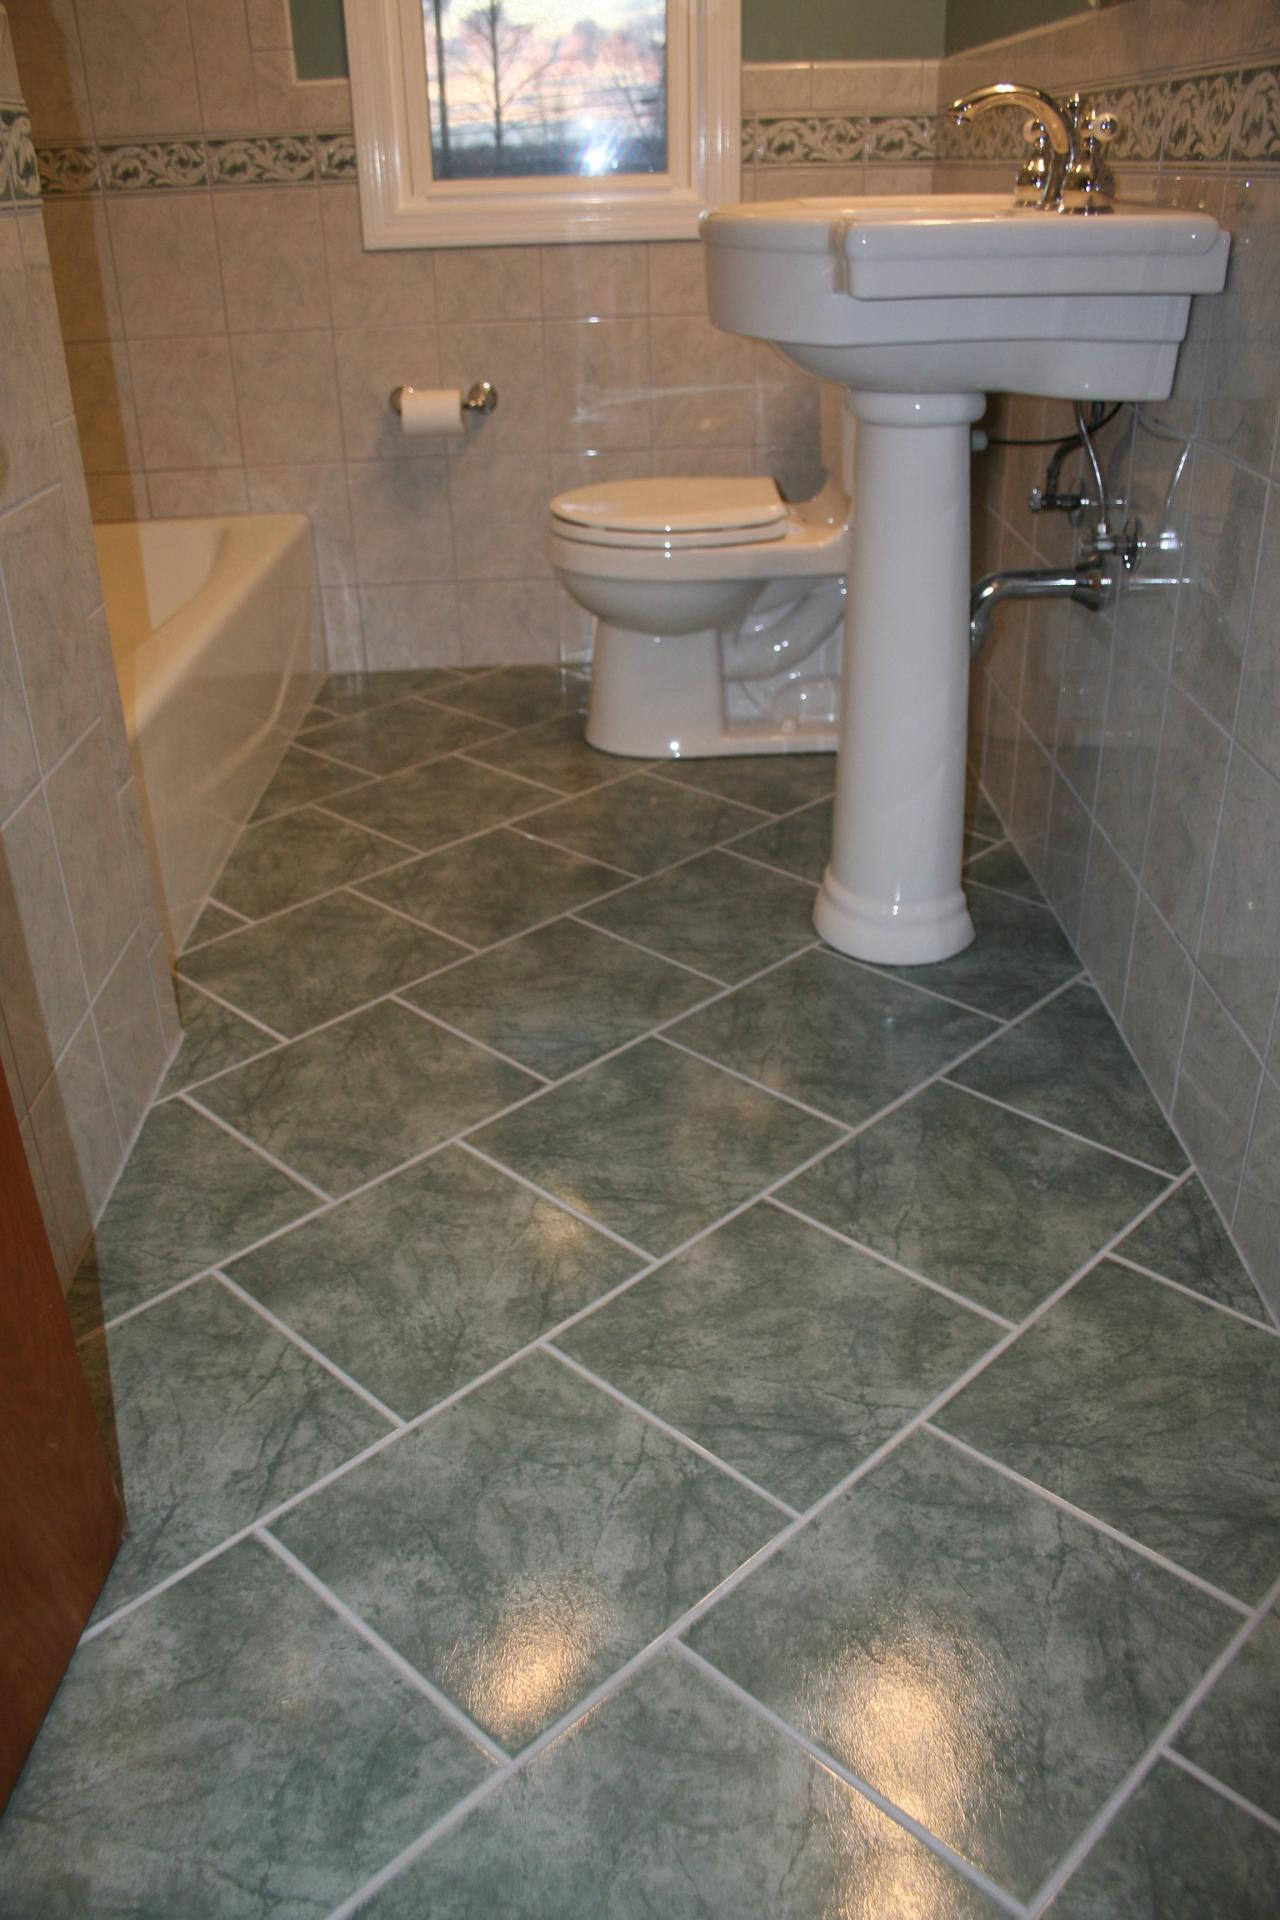 Nest homes construction floor and wall tile designs elegant italian floor tile diagonal brick patter designee dailygadgetfo Image collections